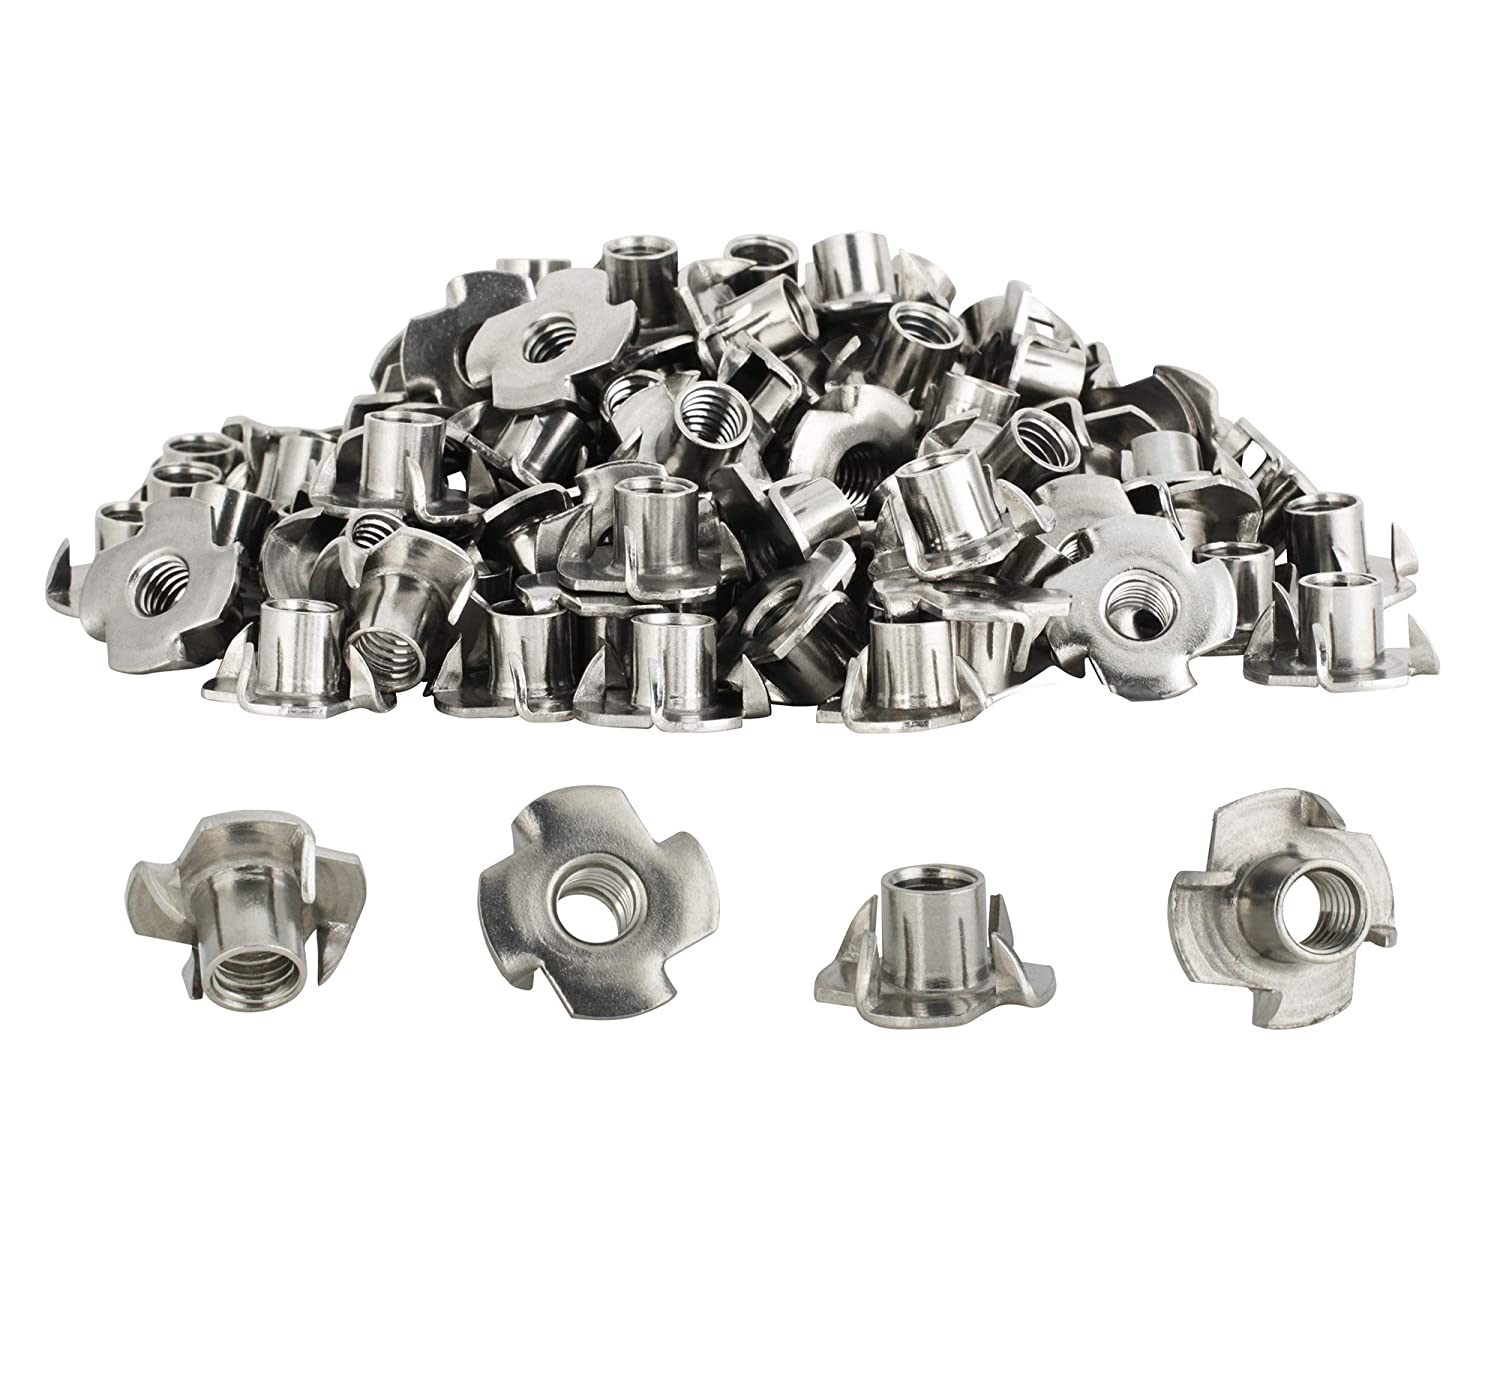 10 Pack Climbing Holds or Leveling Feet 4 Prong T Nut with 5//16-18 Threads for Indoor or Outdoor use with Furniture Stainless Steel 5//16 T-Nuts